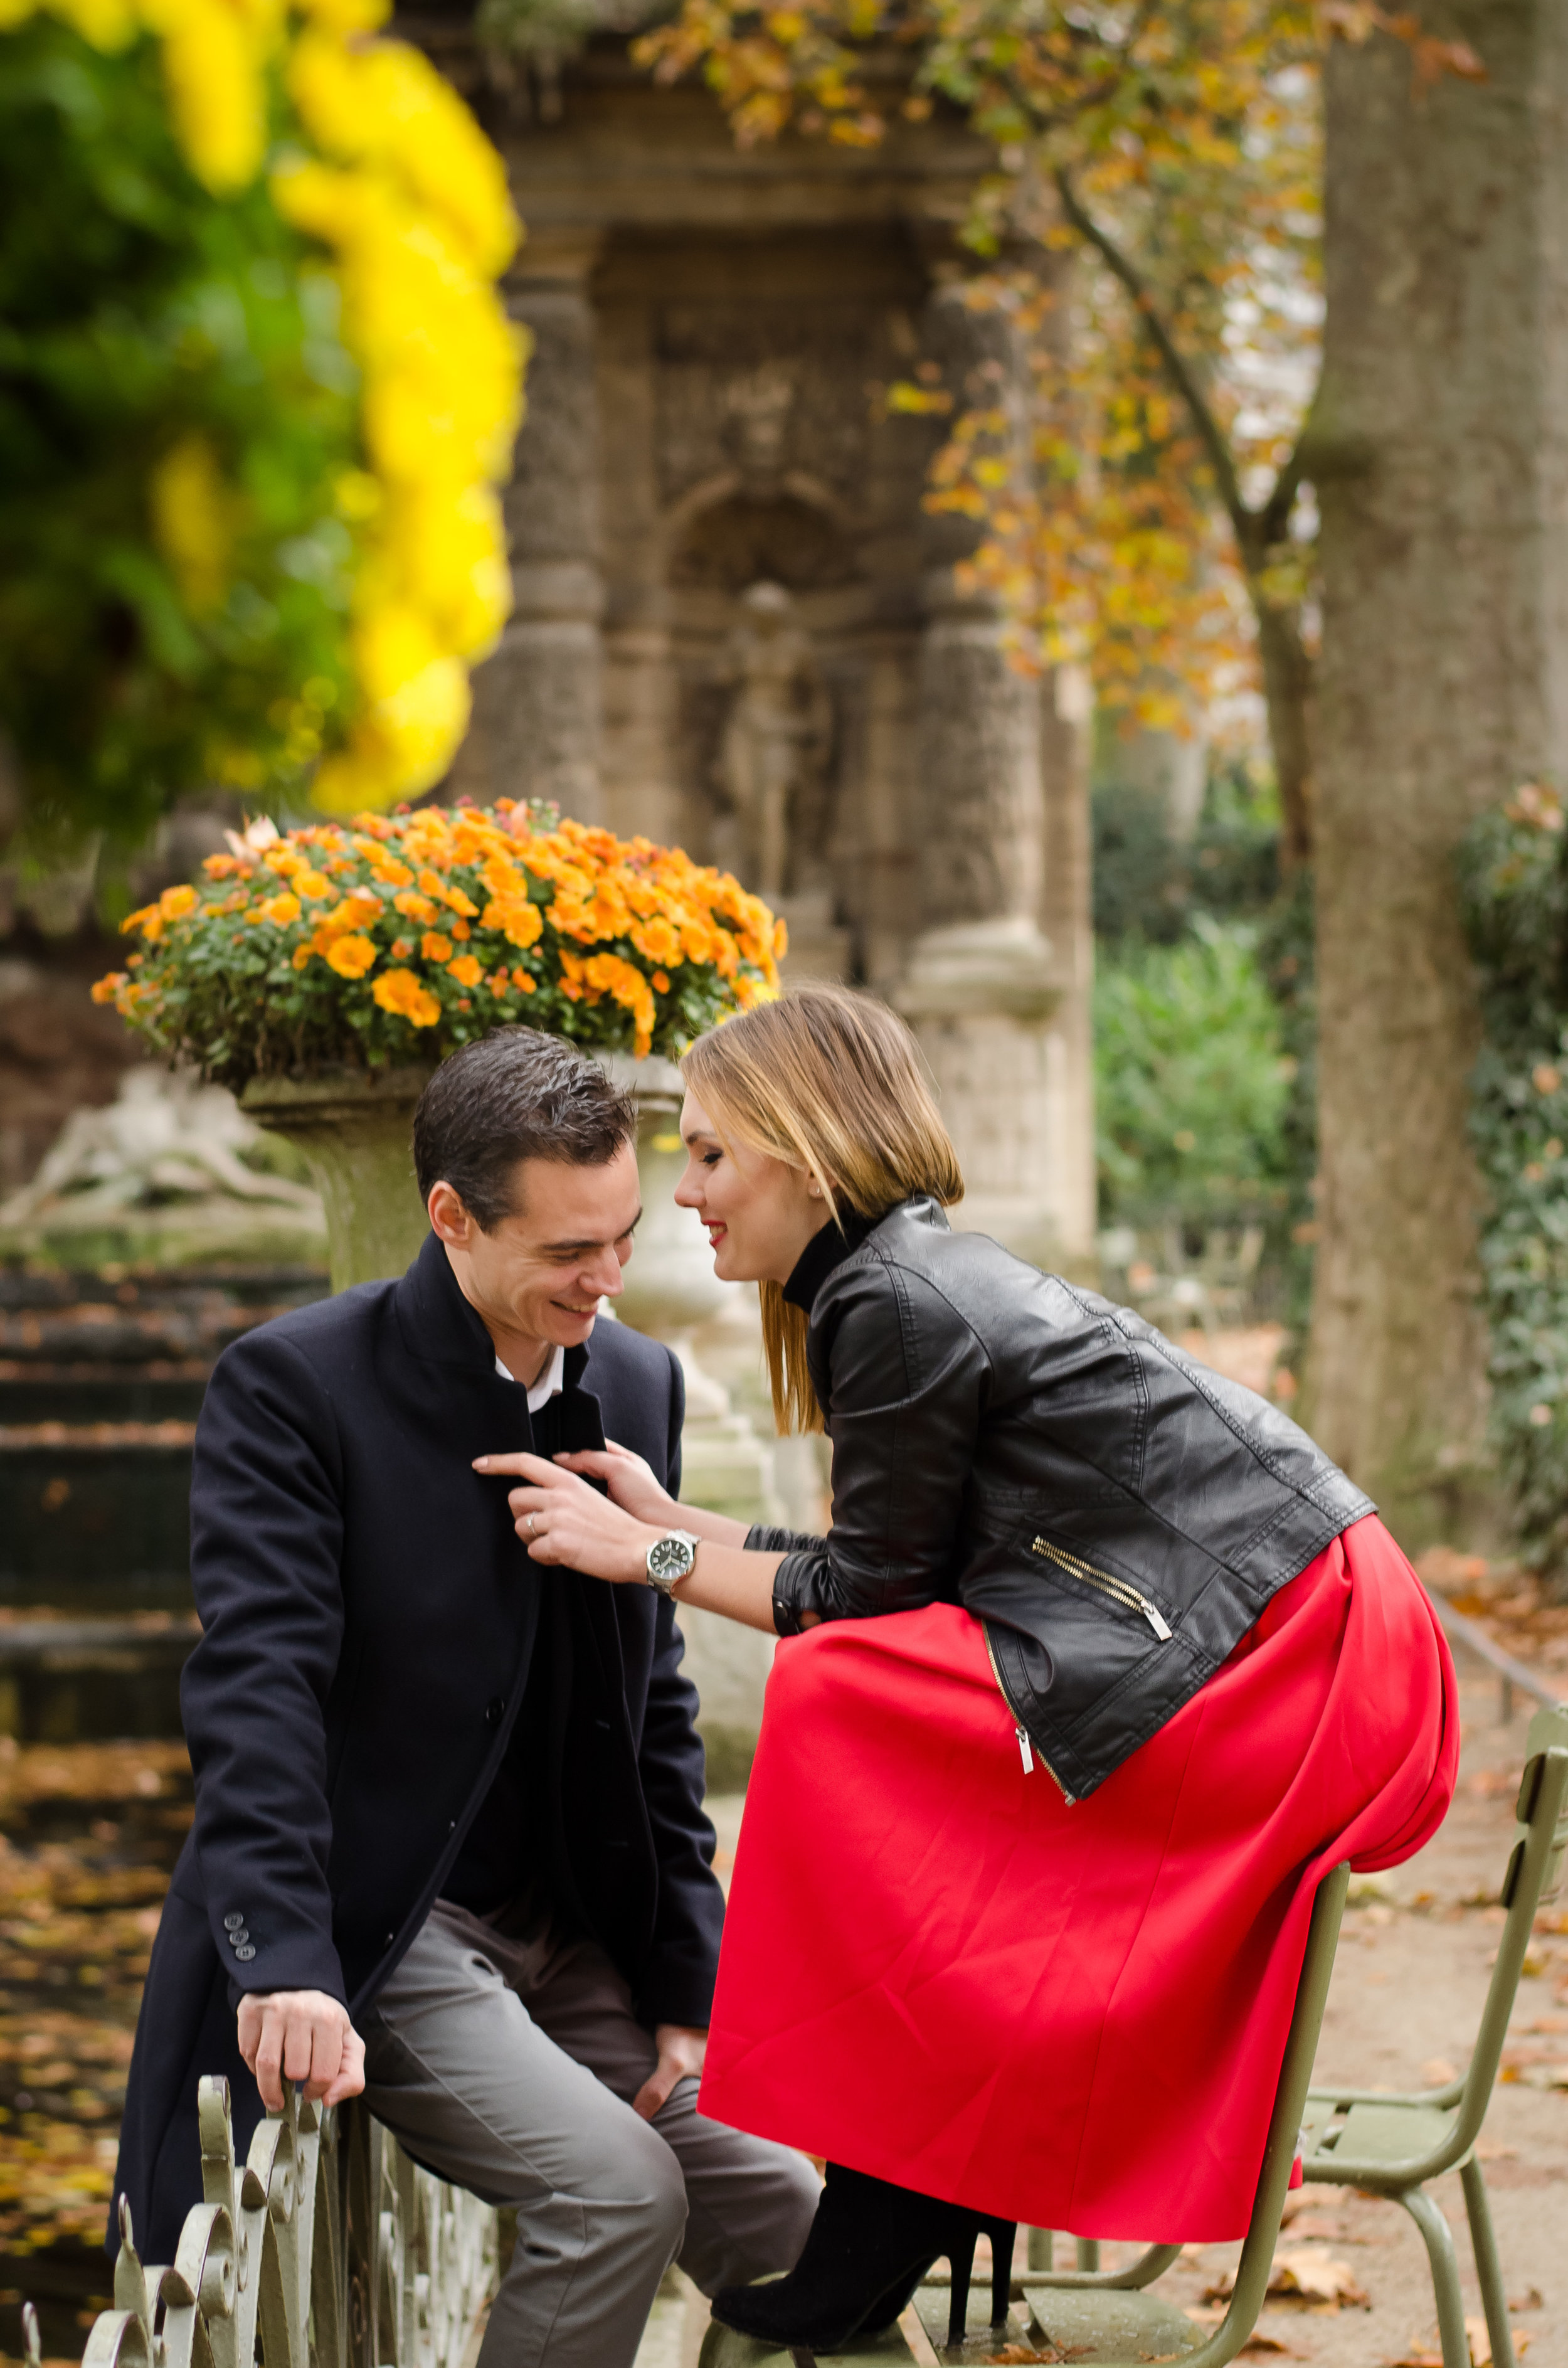 Paris engagement photoshoot in the autumn at Jardin du Luxembourg-141.jpg